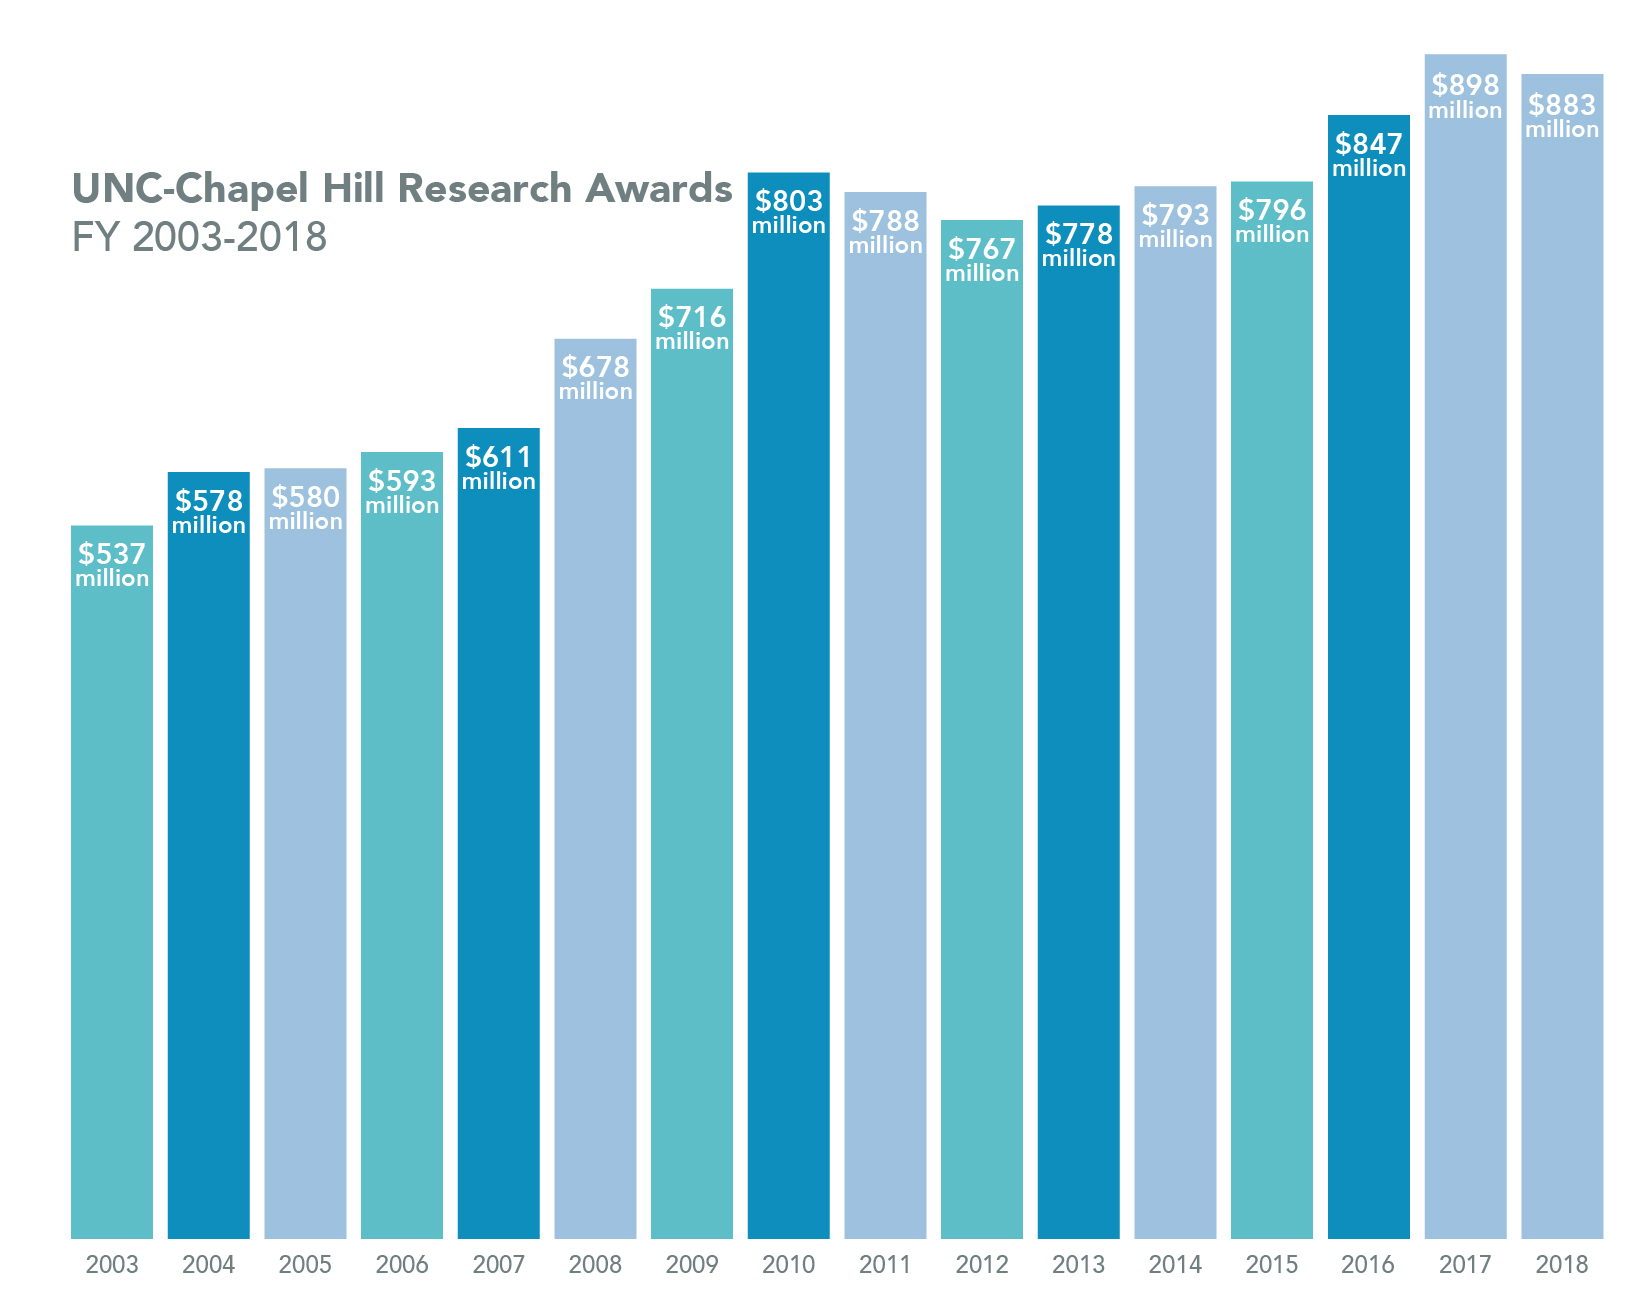 UNC at Chapel Hill's Research Awards from 2003 to 2018. In 2003, awarded 537 million dollars. In 2004, awarded 578 million dollars. In 2005, awarded 580 million dollars. In 2006, awarded 593 million dollars. In 2007, awarded 611 million dollars. In 2008, awarded 678 million dollars. In 2009, awarded 716 million dollars. In 2010, awarded 803 million dollars. In 2011, awarded 788 million dollars. In 2012, awarded 767 million dollars. In 2013, awarded 778 million dollars. In 2014, awarded 793 million dollars. In 2015, awarded 796 million dollars. In 2016, awarded 847 million dollars. In 2017, awarded 898 million dollars. In 2018, awarded 883 million dollars.